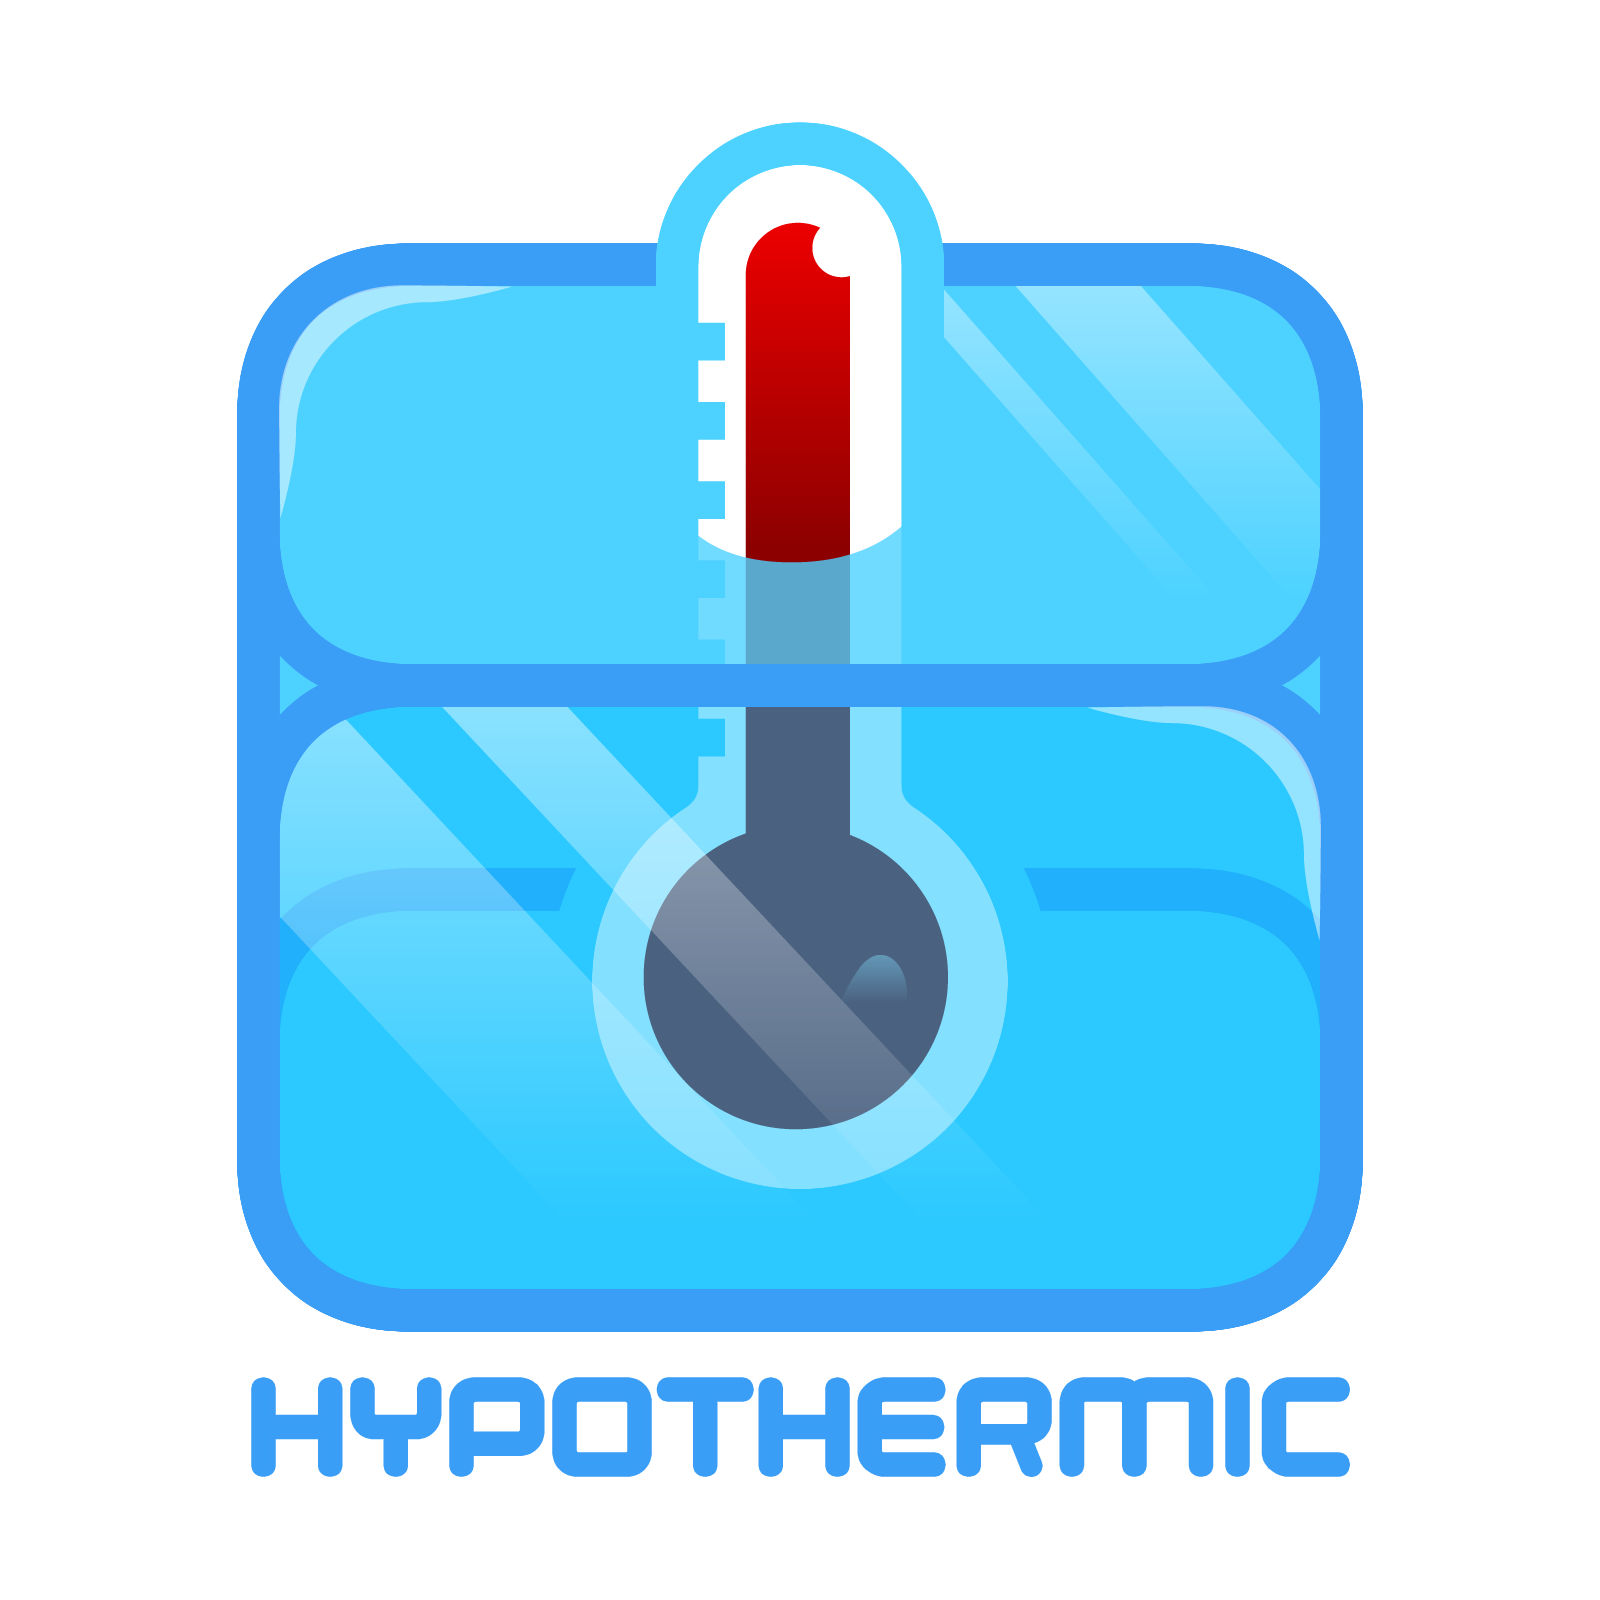 HYPOTHERMIC.png